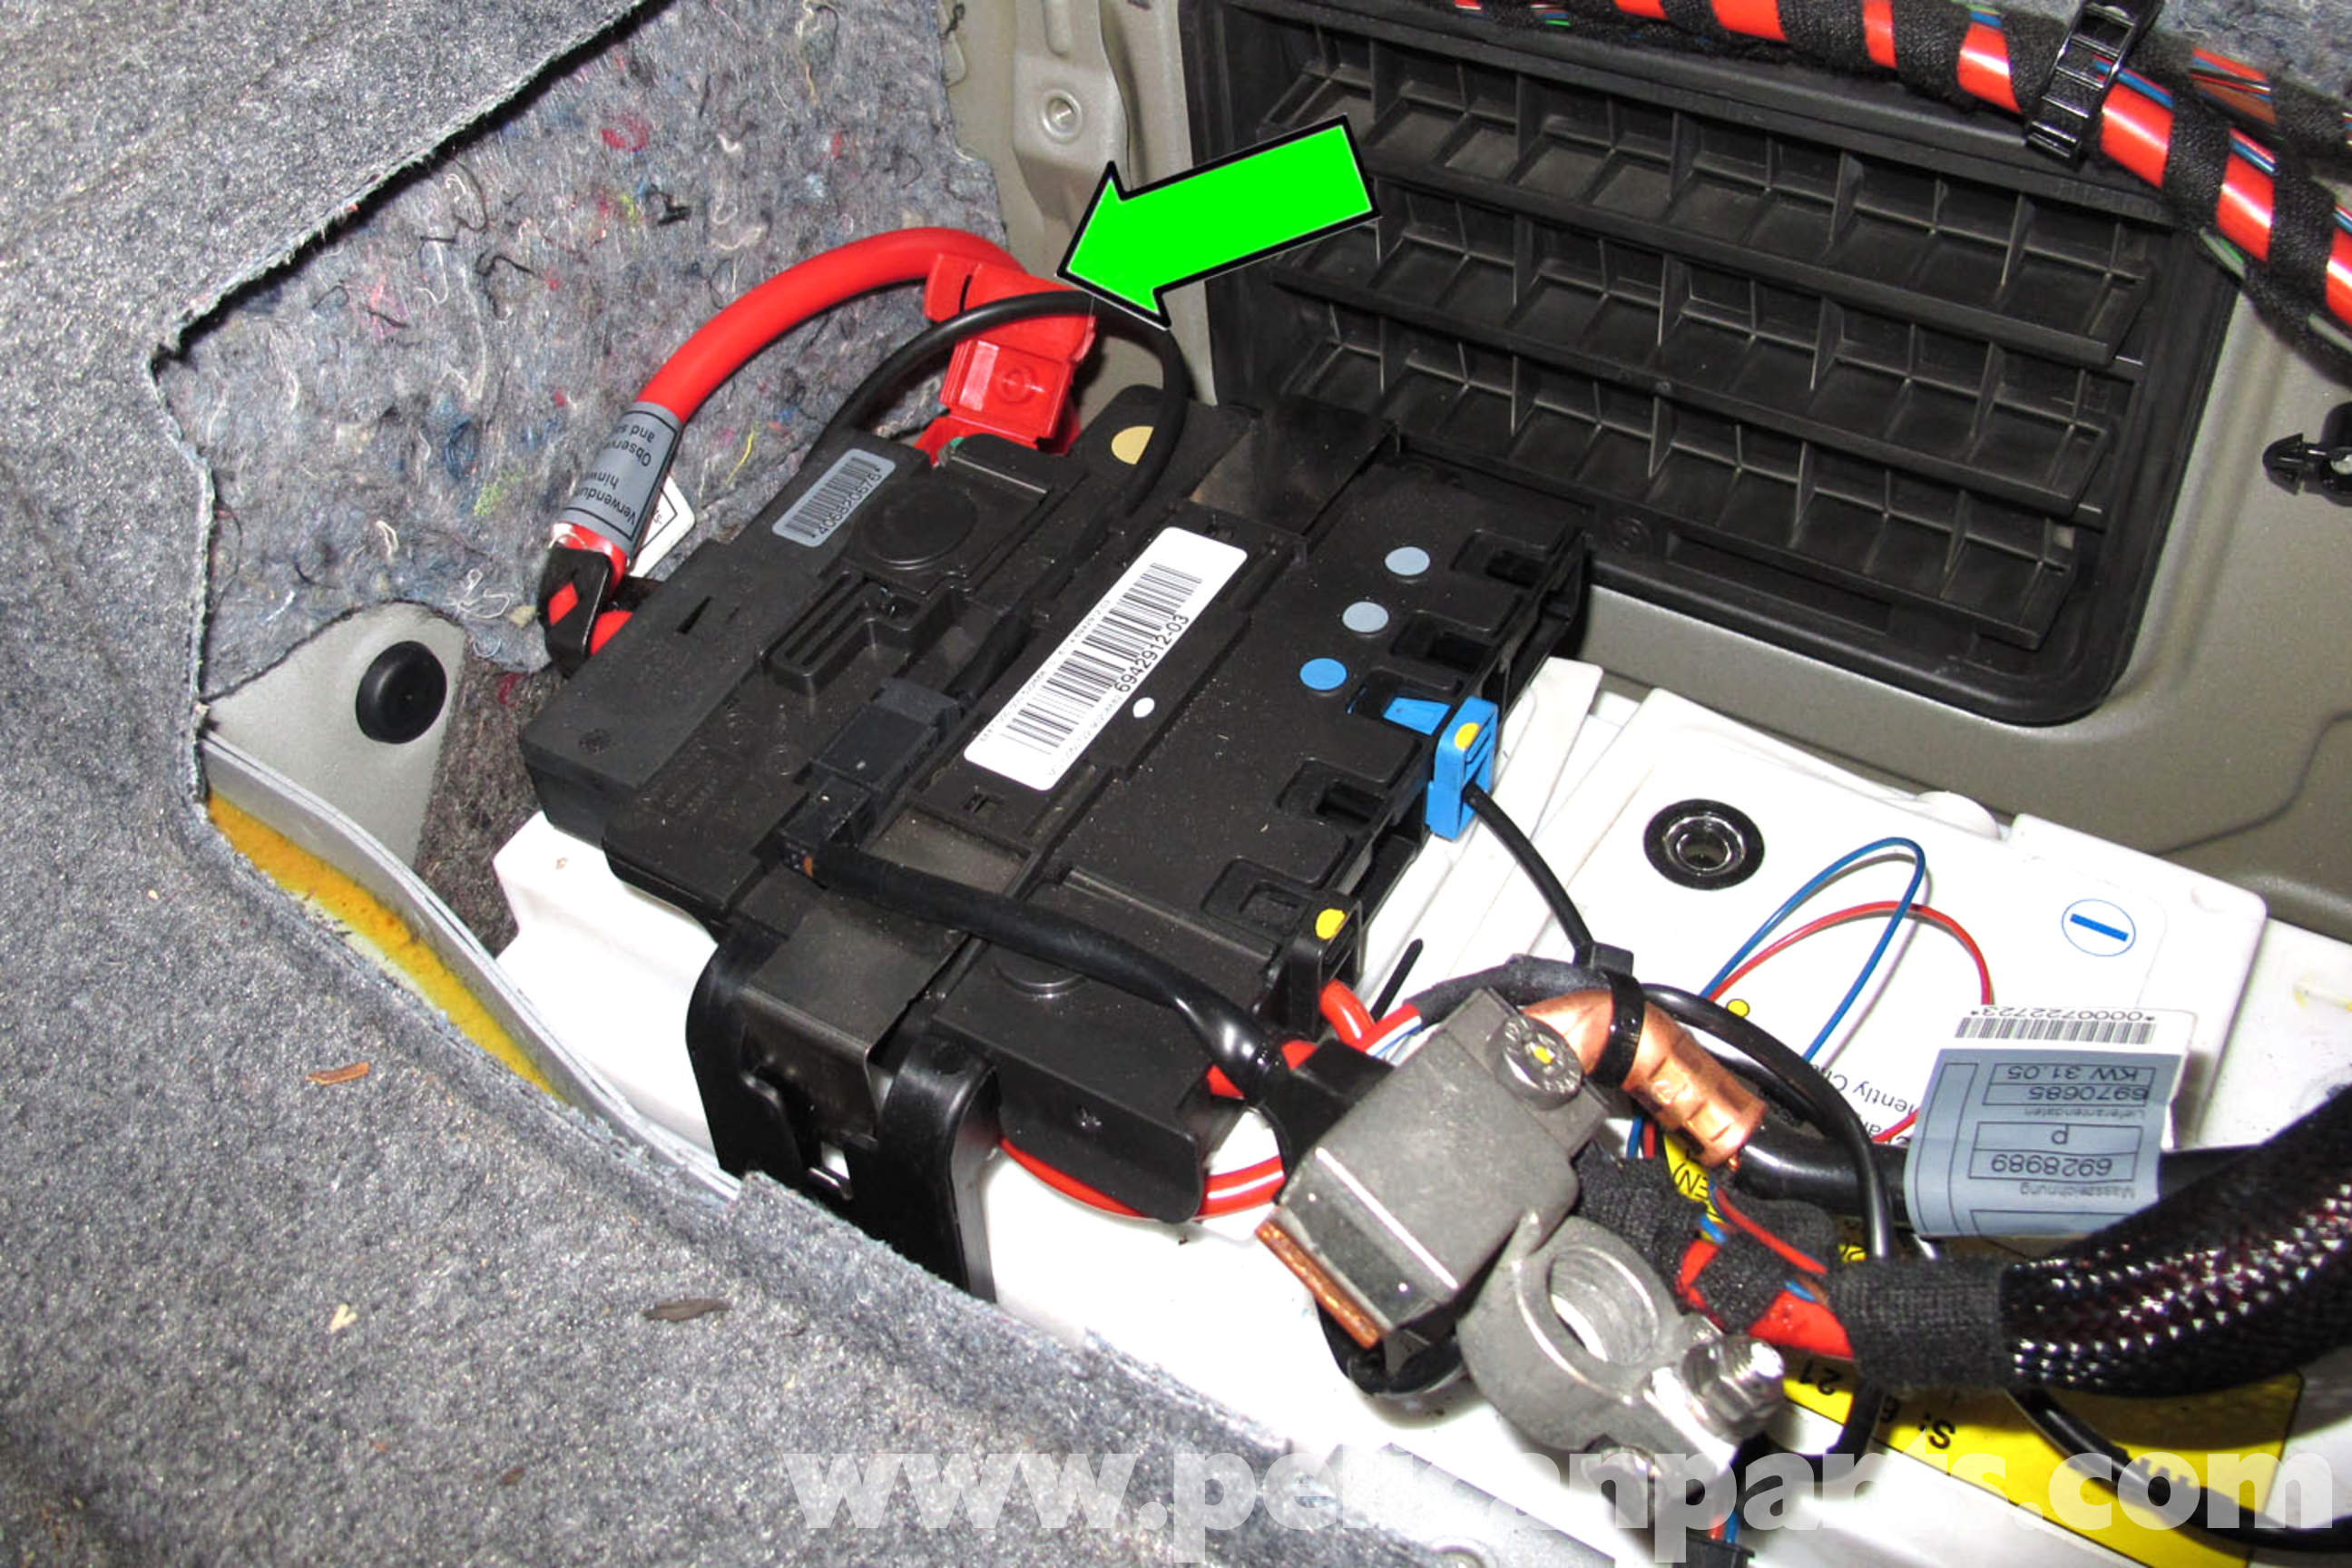 Bmw 335i Fuse Box Diagram Wiring Library Pic06 E90 Battery Replacement E91 E92 E93 Pelican Parts Diy